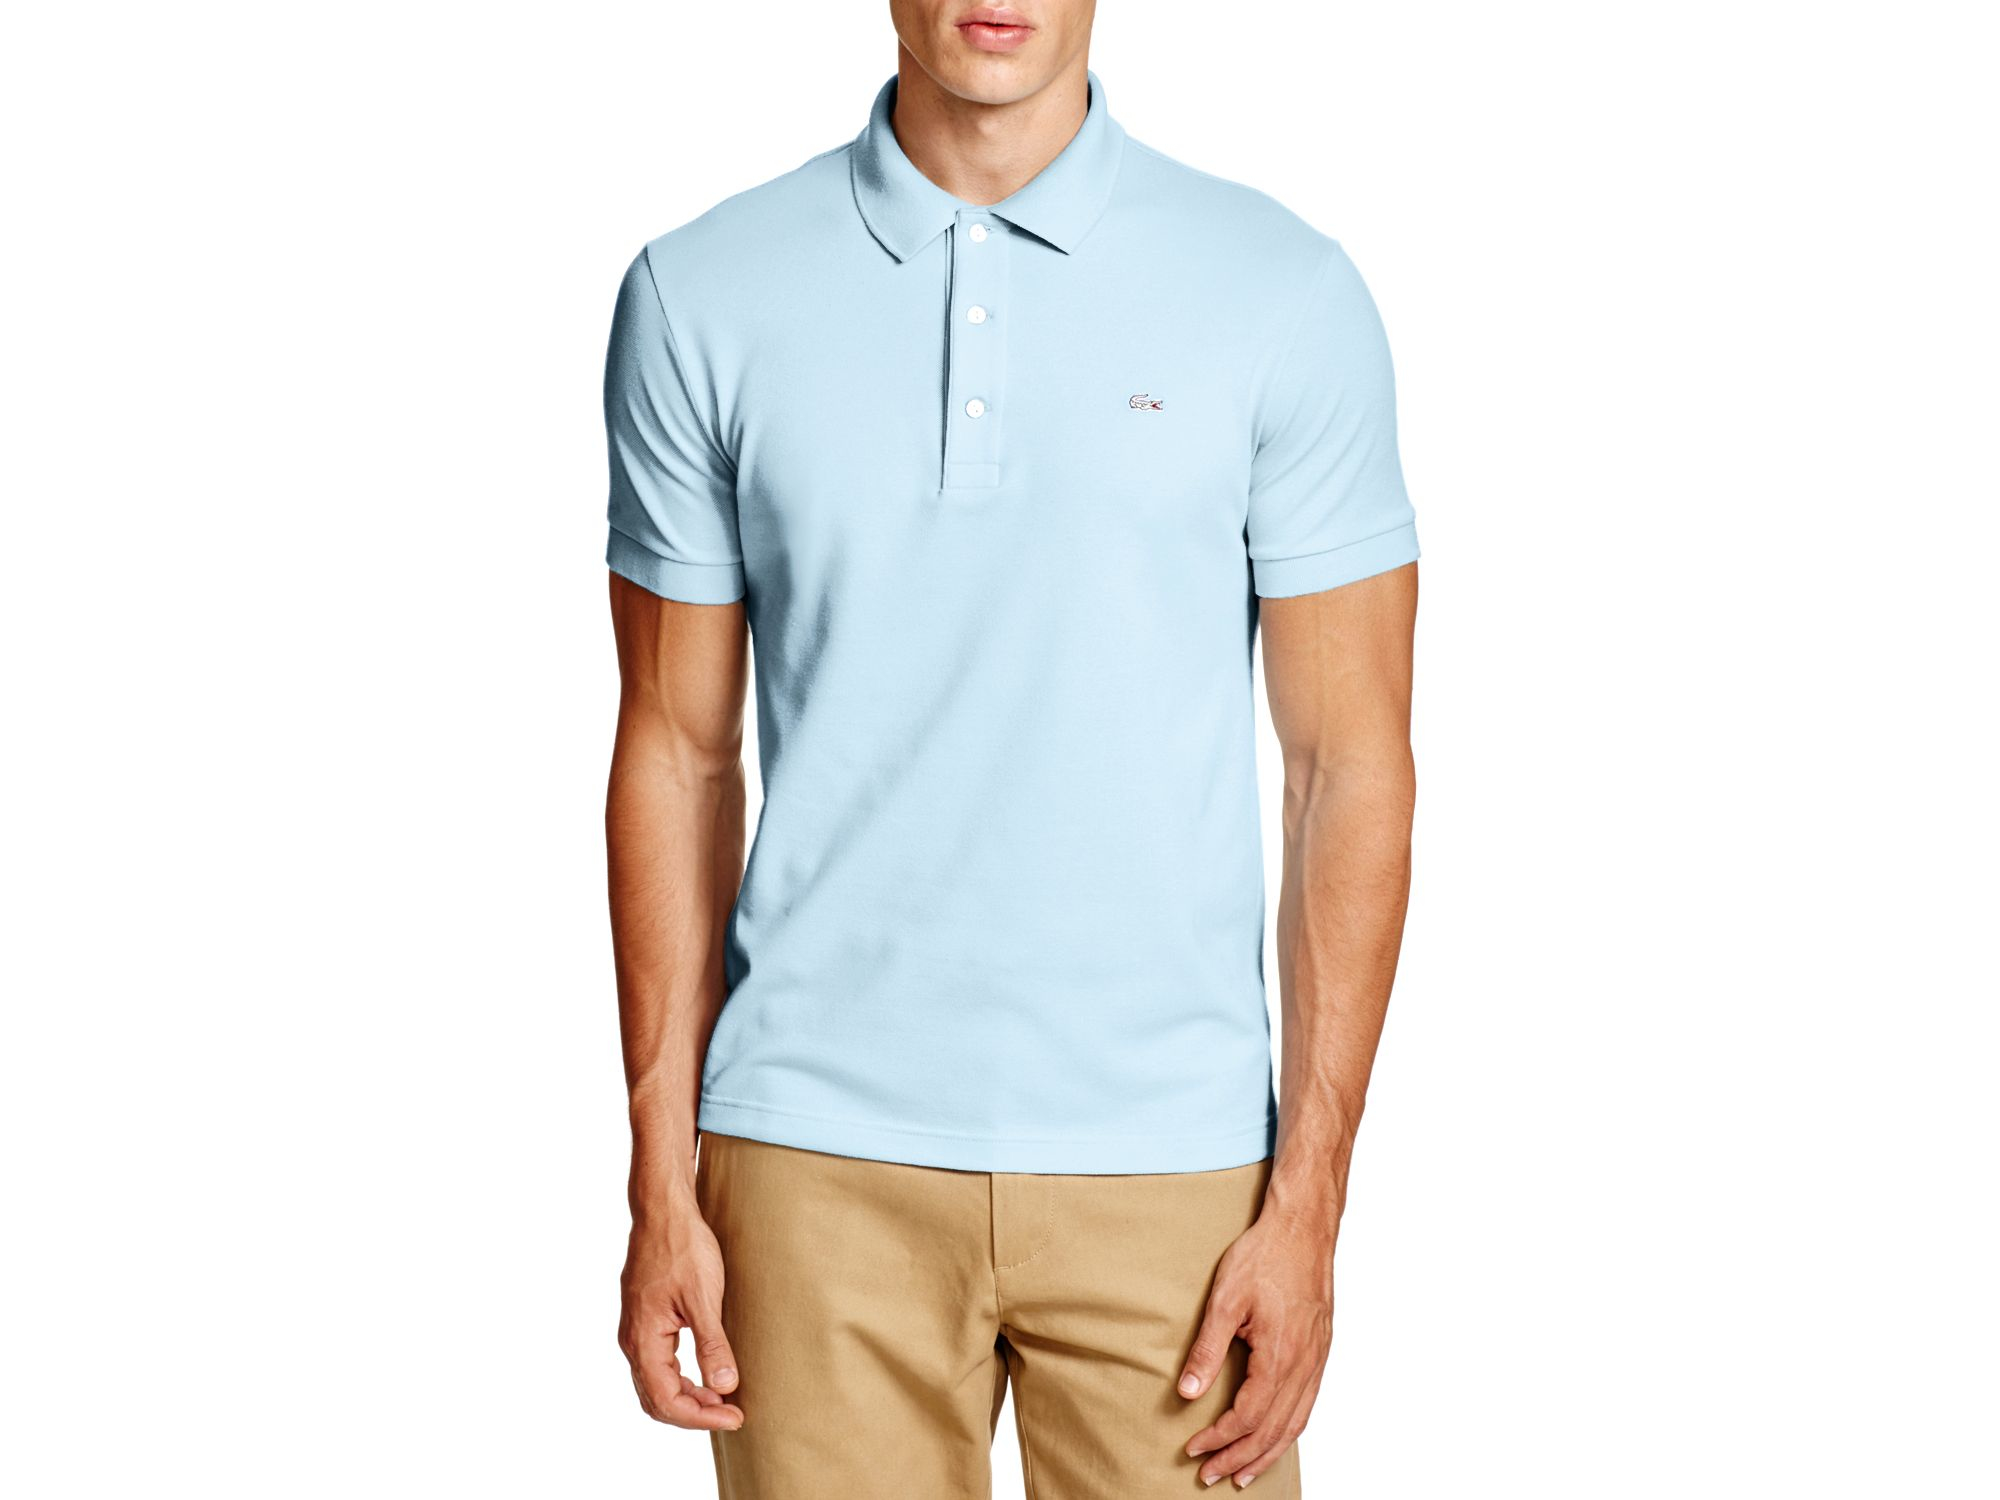 9f93346cc0b5e8 Lacoste Stretch Slim Fit Polo in Blue for Men - Lyst